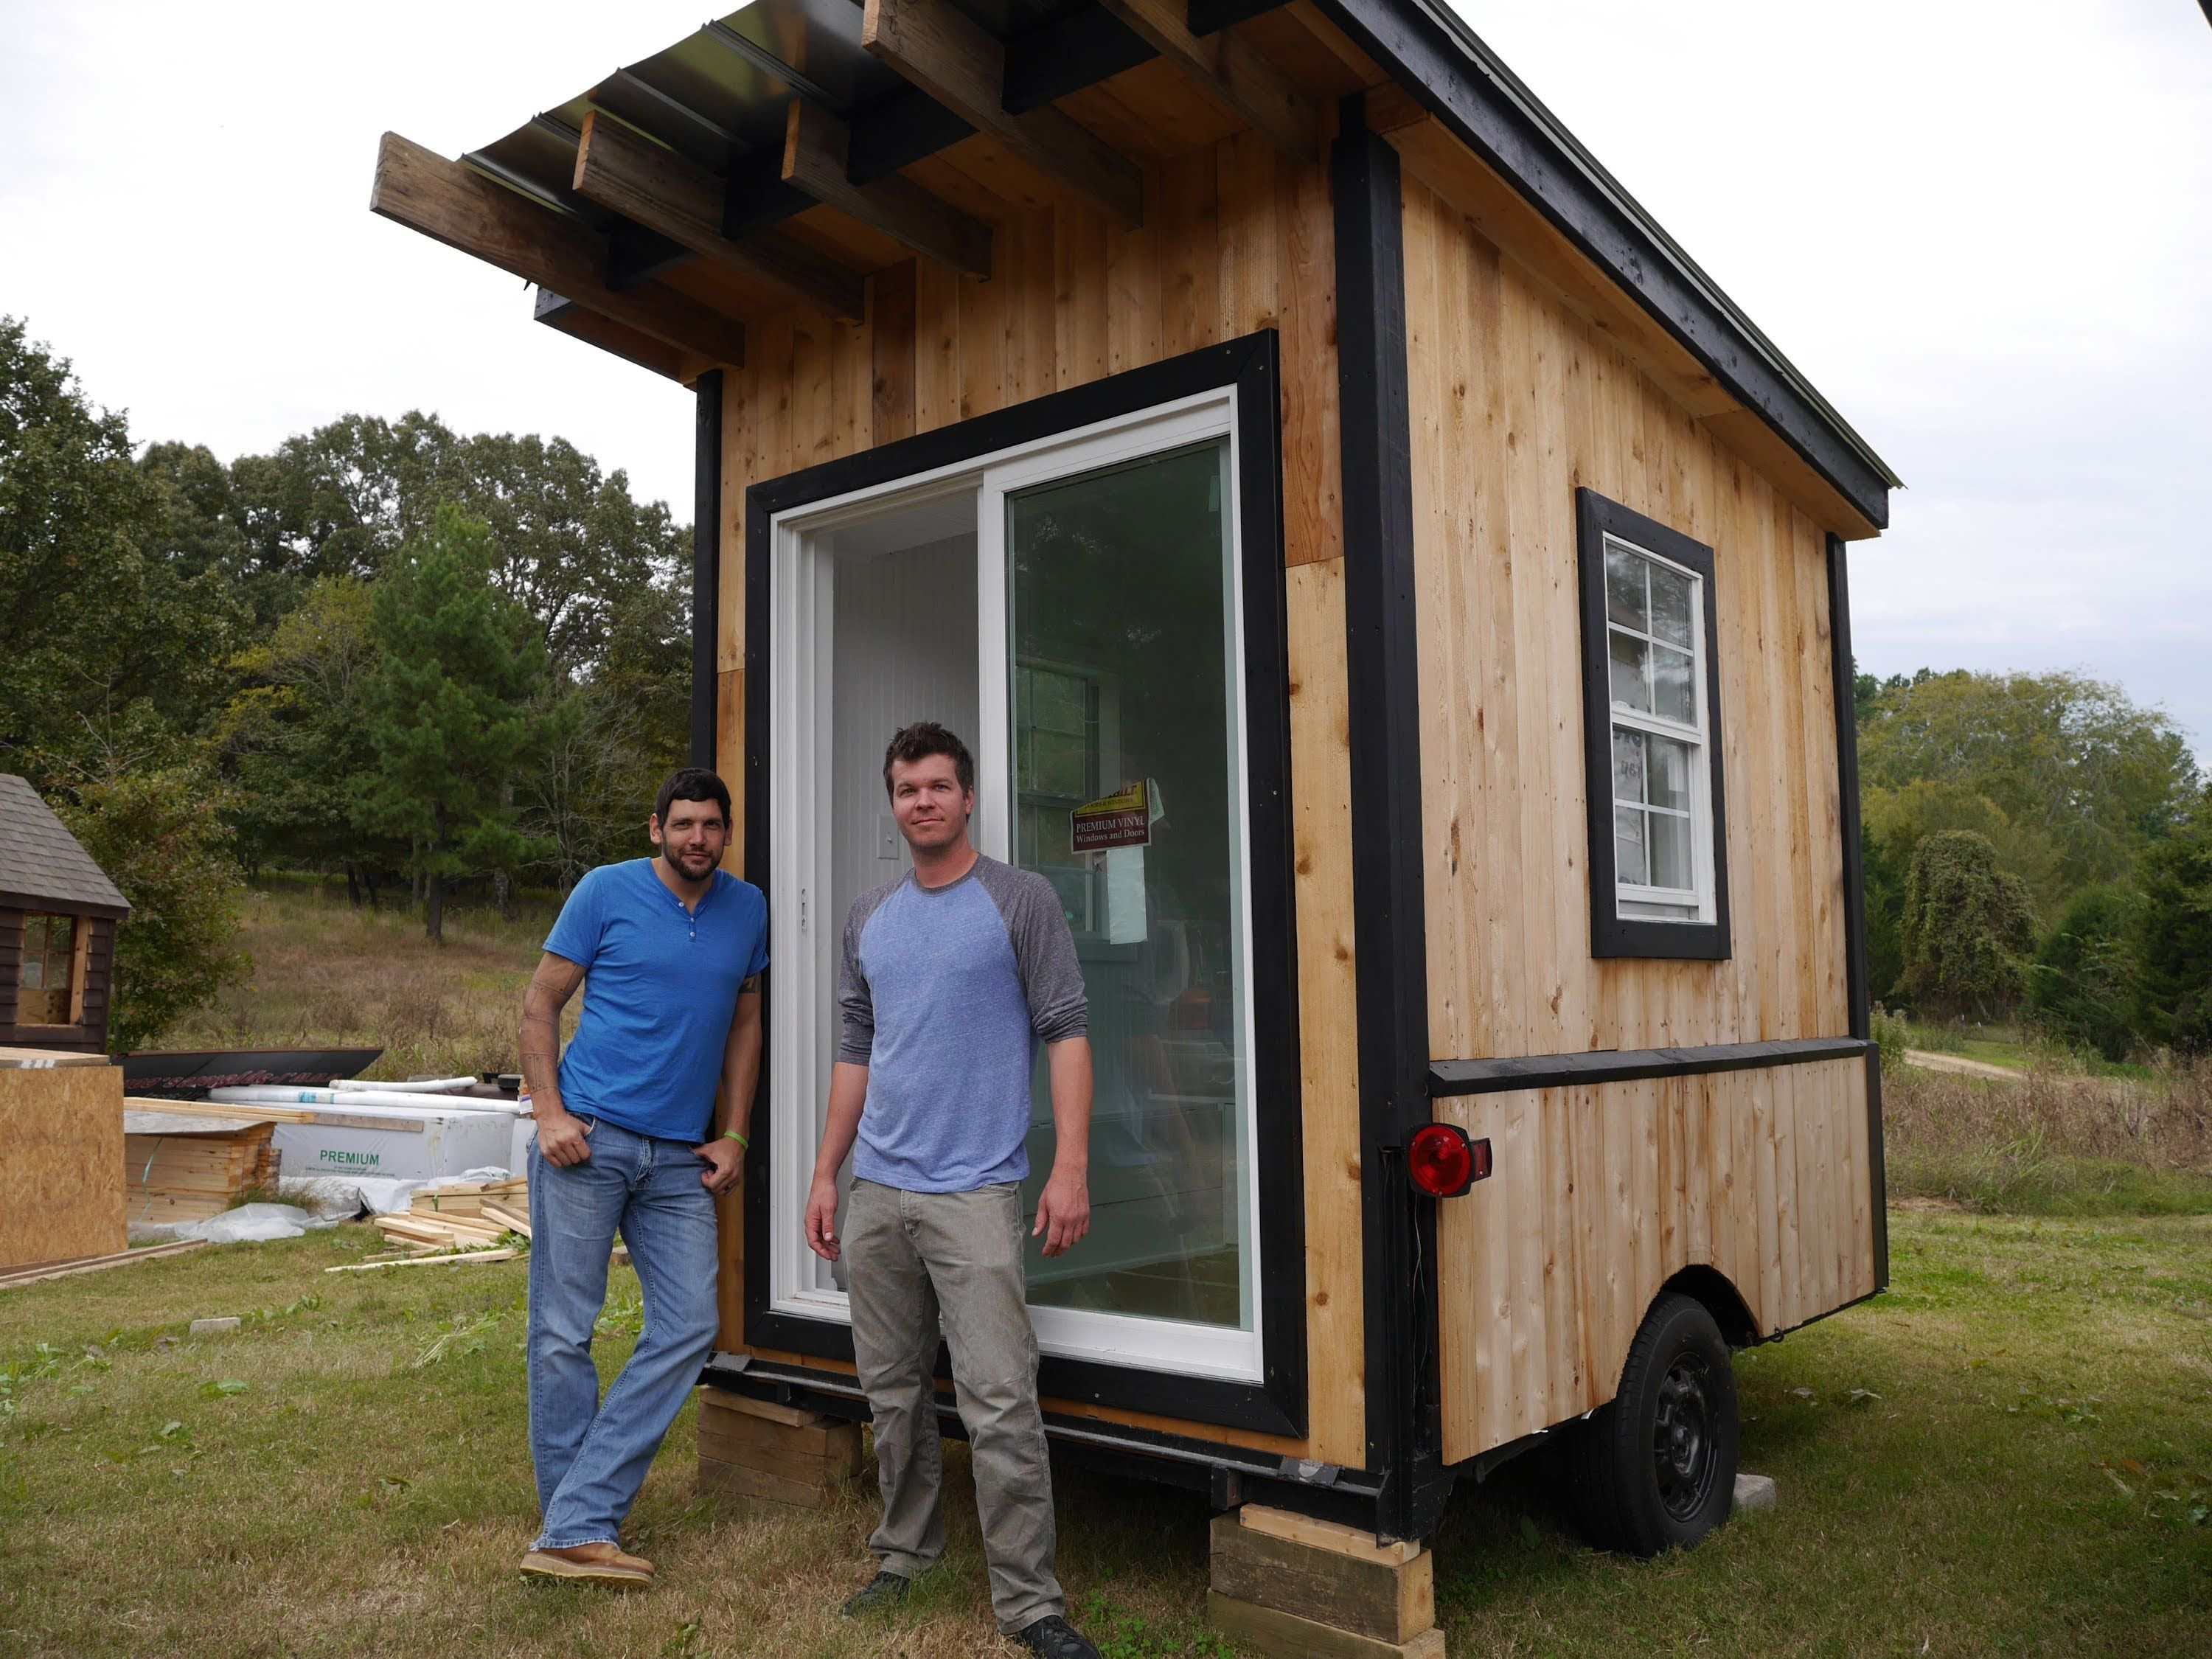 A Tiny Tailgating House/Cabin On Wheels- A 23 Square Foot DIY